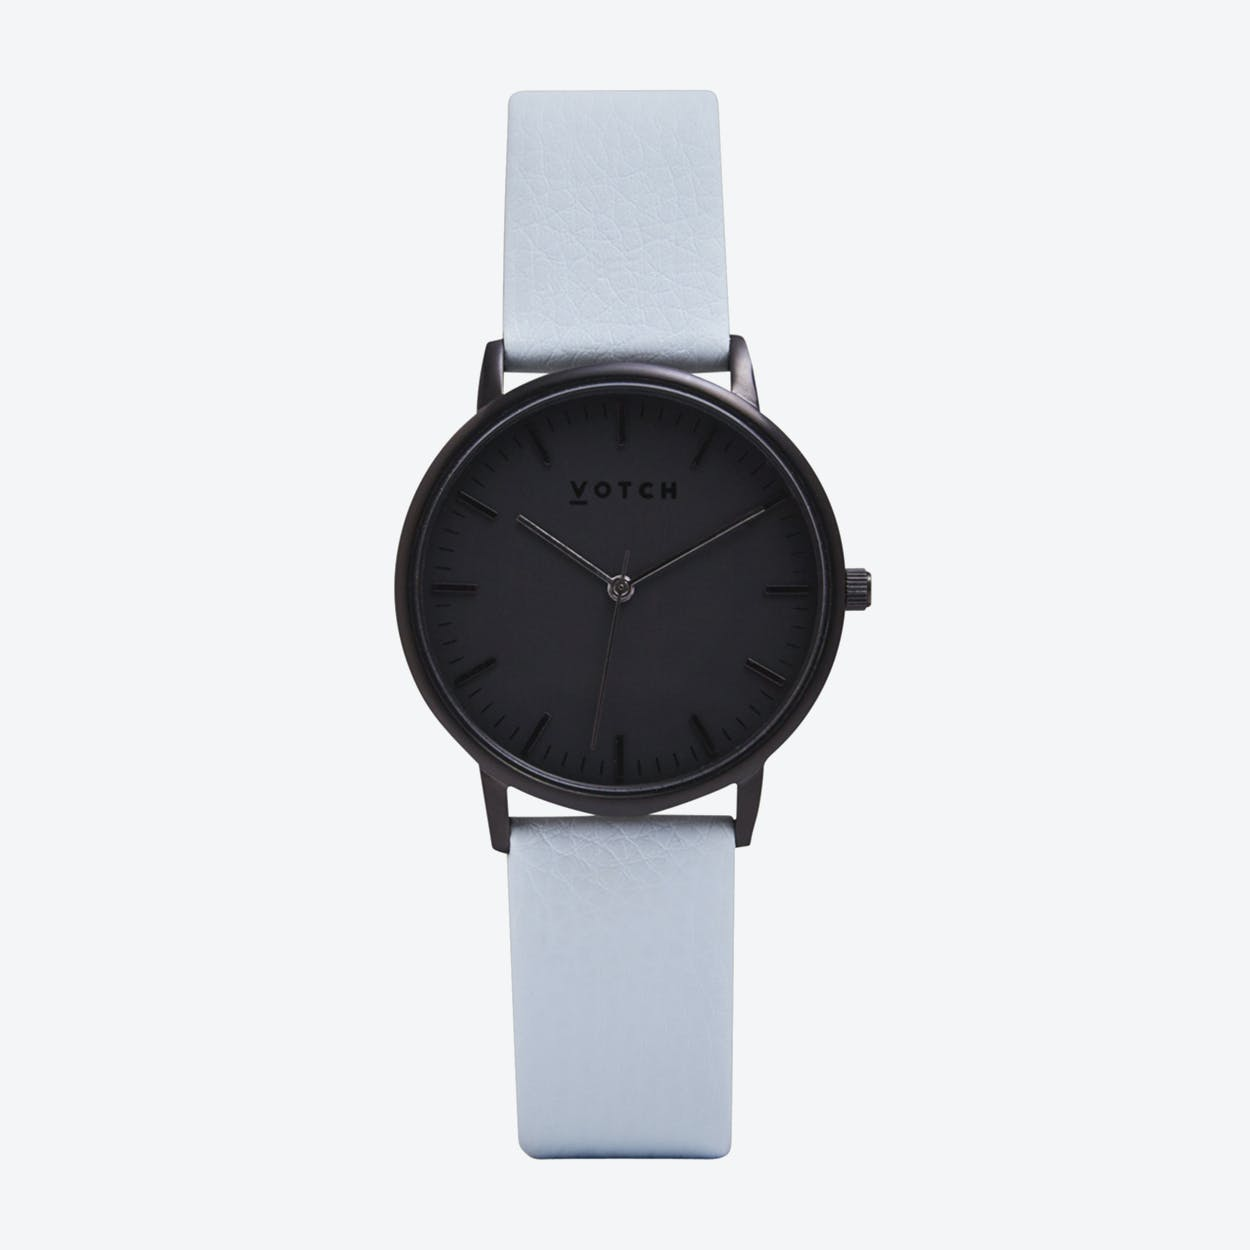 Intense Classic Watch in Black with Black Face and Light Blue Vegan Leather Strap, 36mm